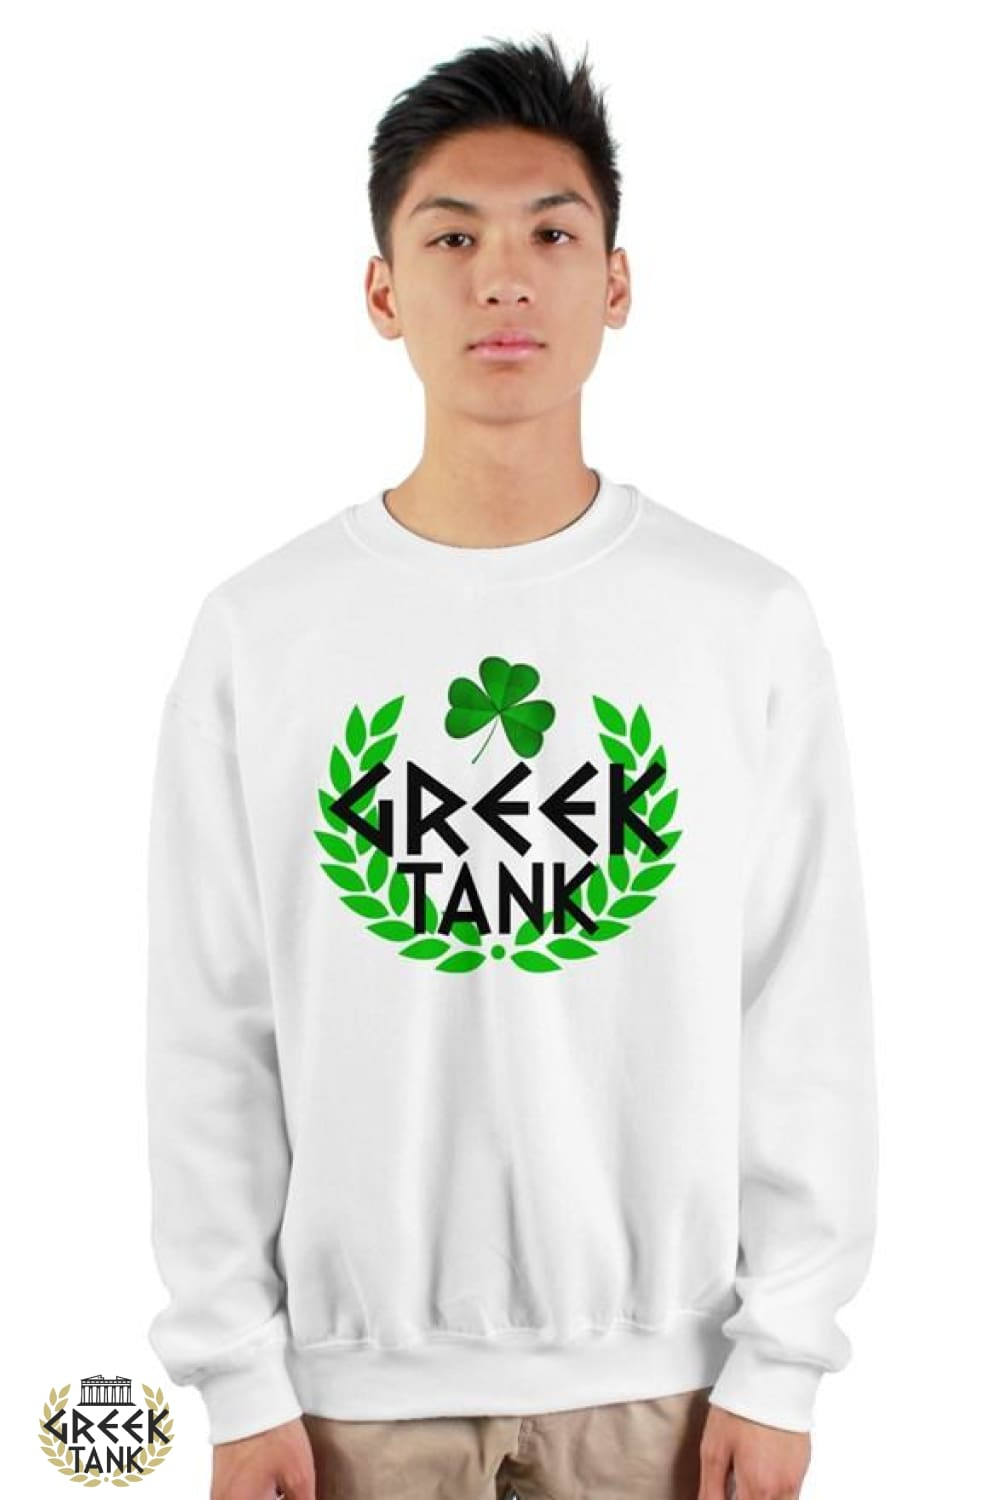 GreekTank Crew Neck St. Patty's